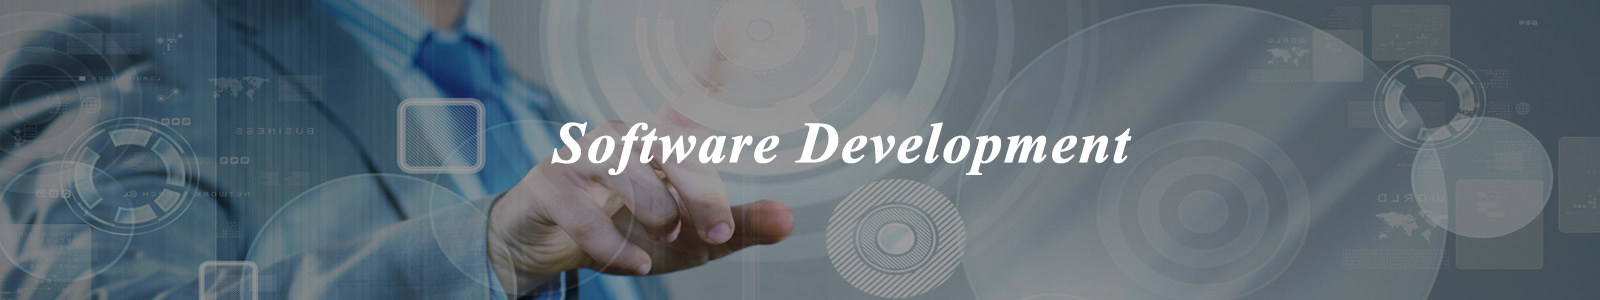 softwaredevelopment-banner